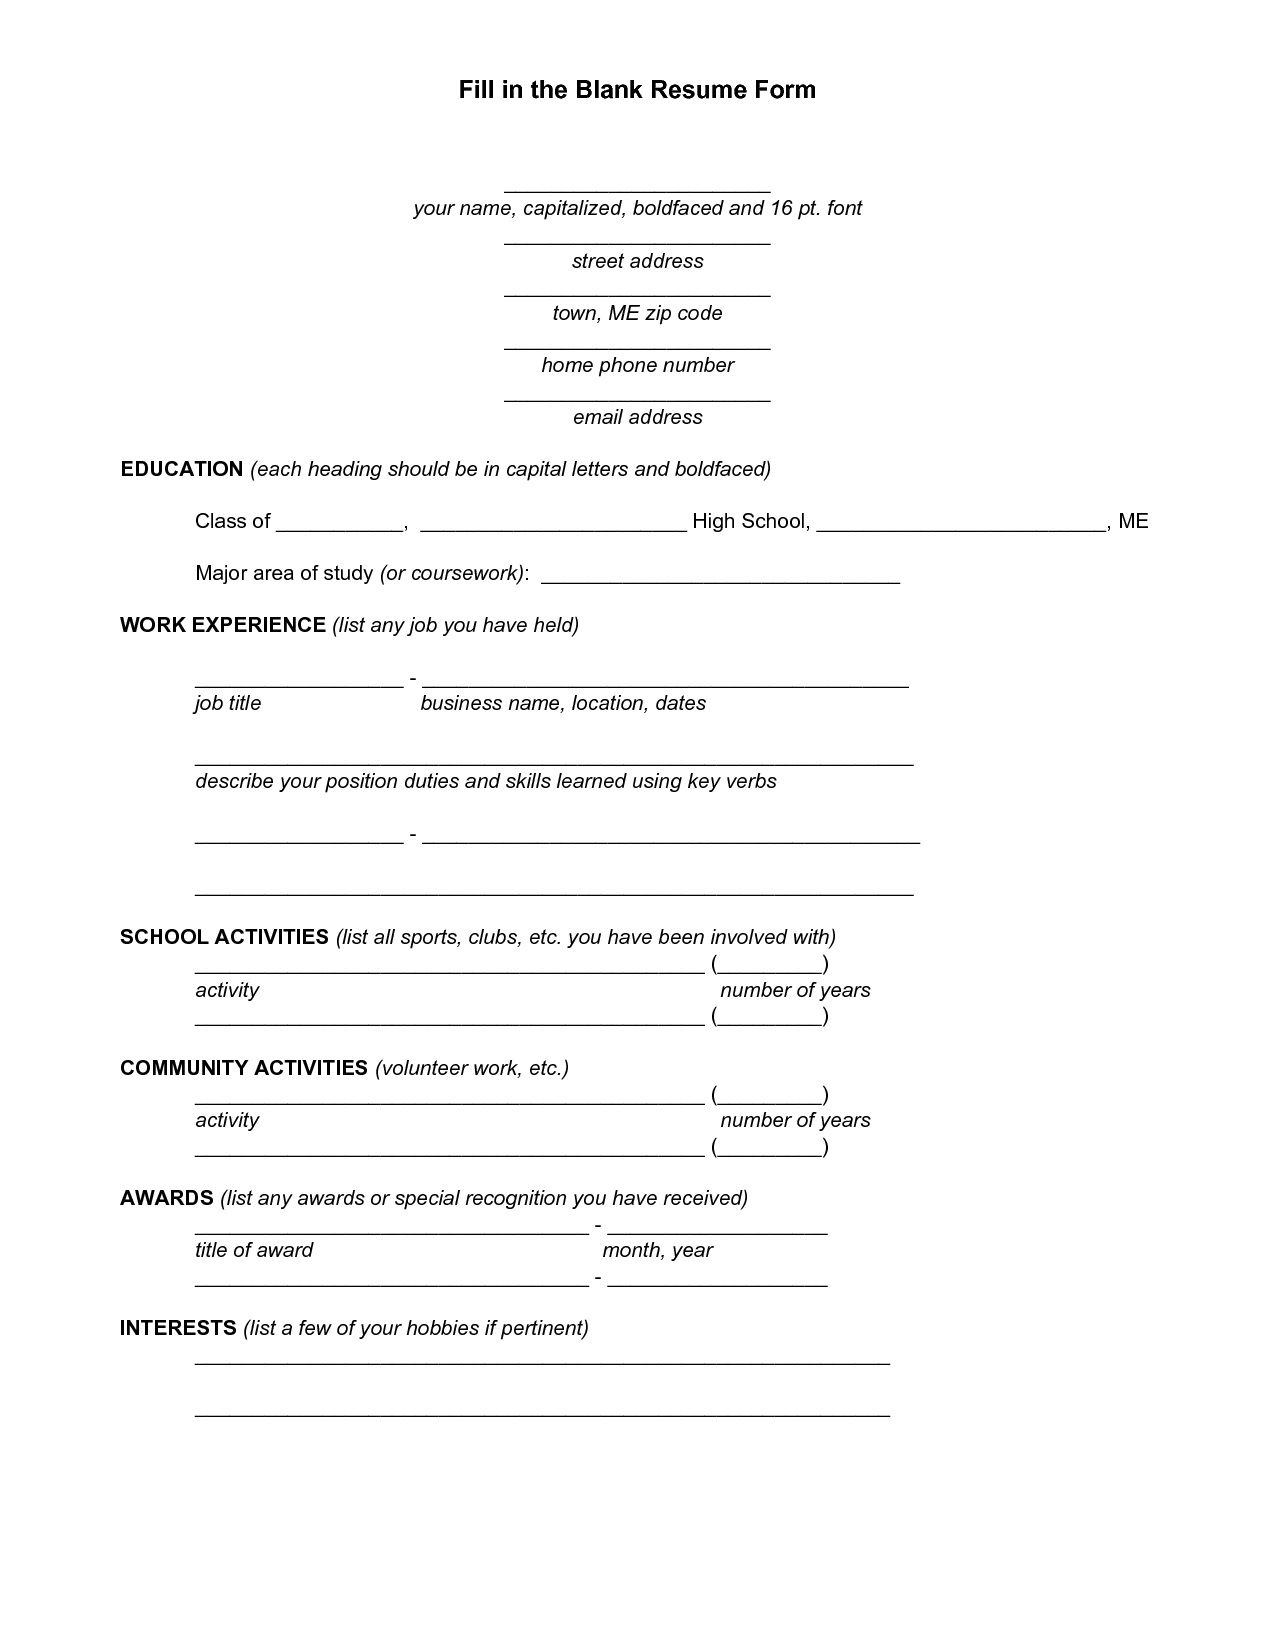 Blank Job Resume Form we provide as reference to make correct and ...